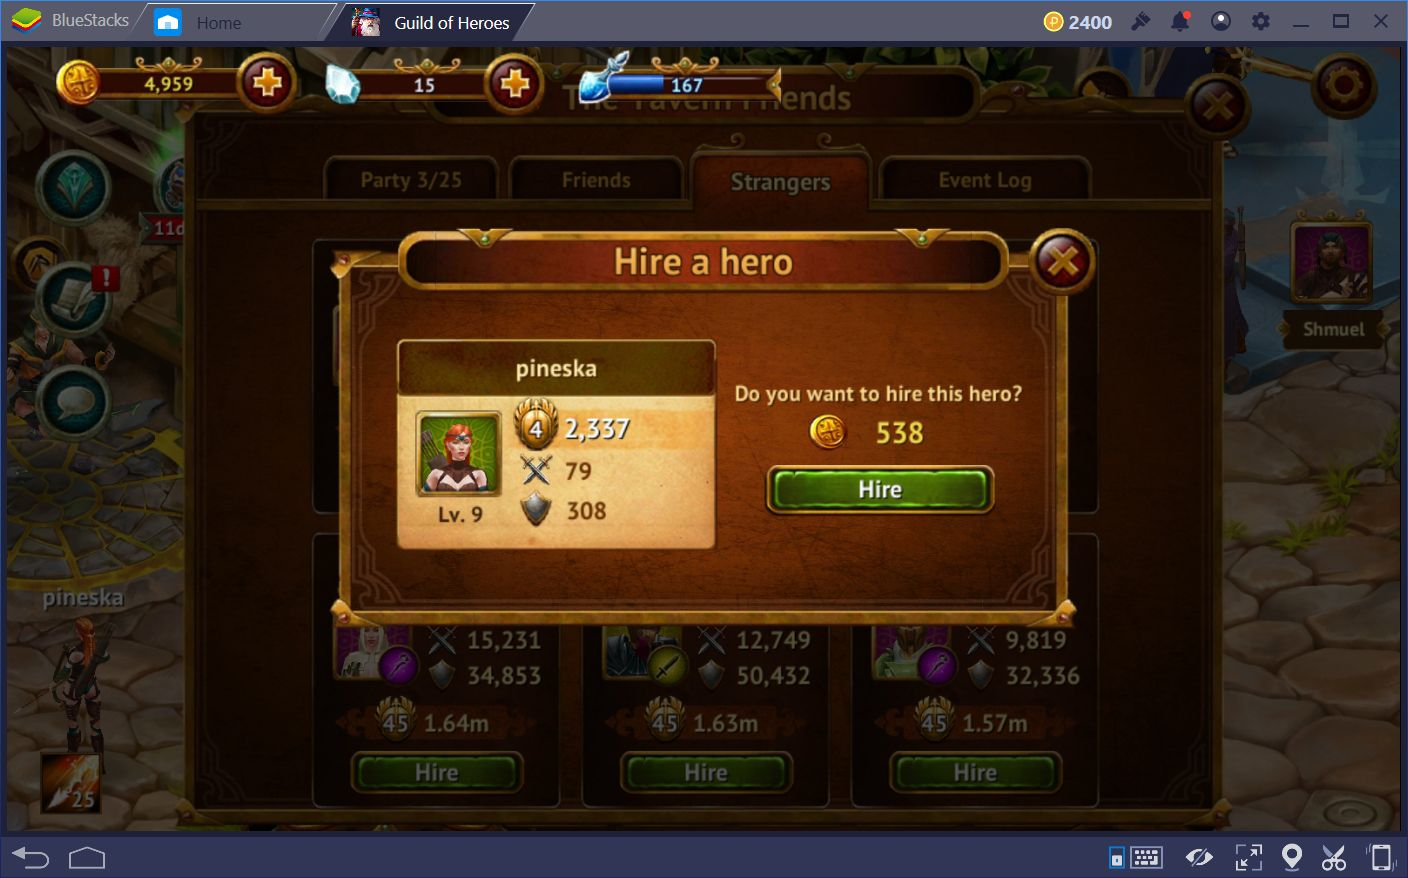 guild of heroes leveling guide